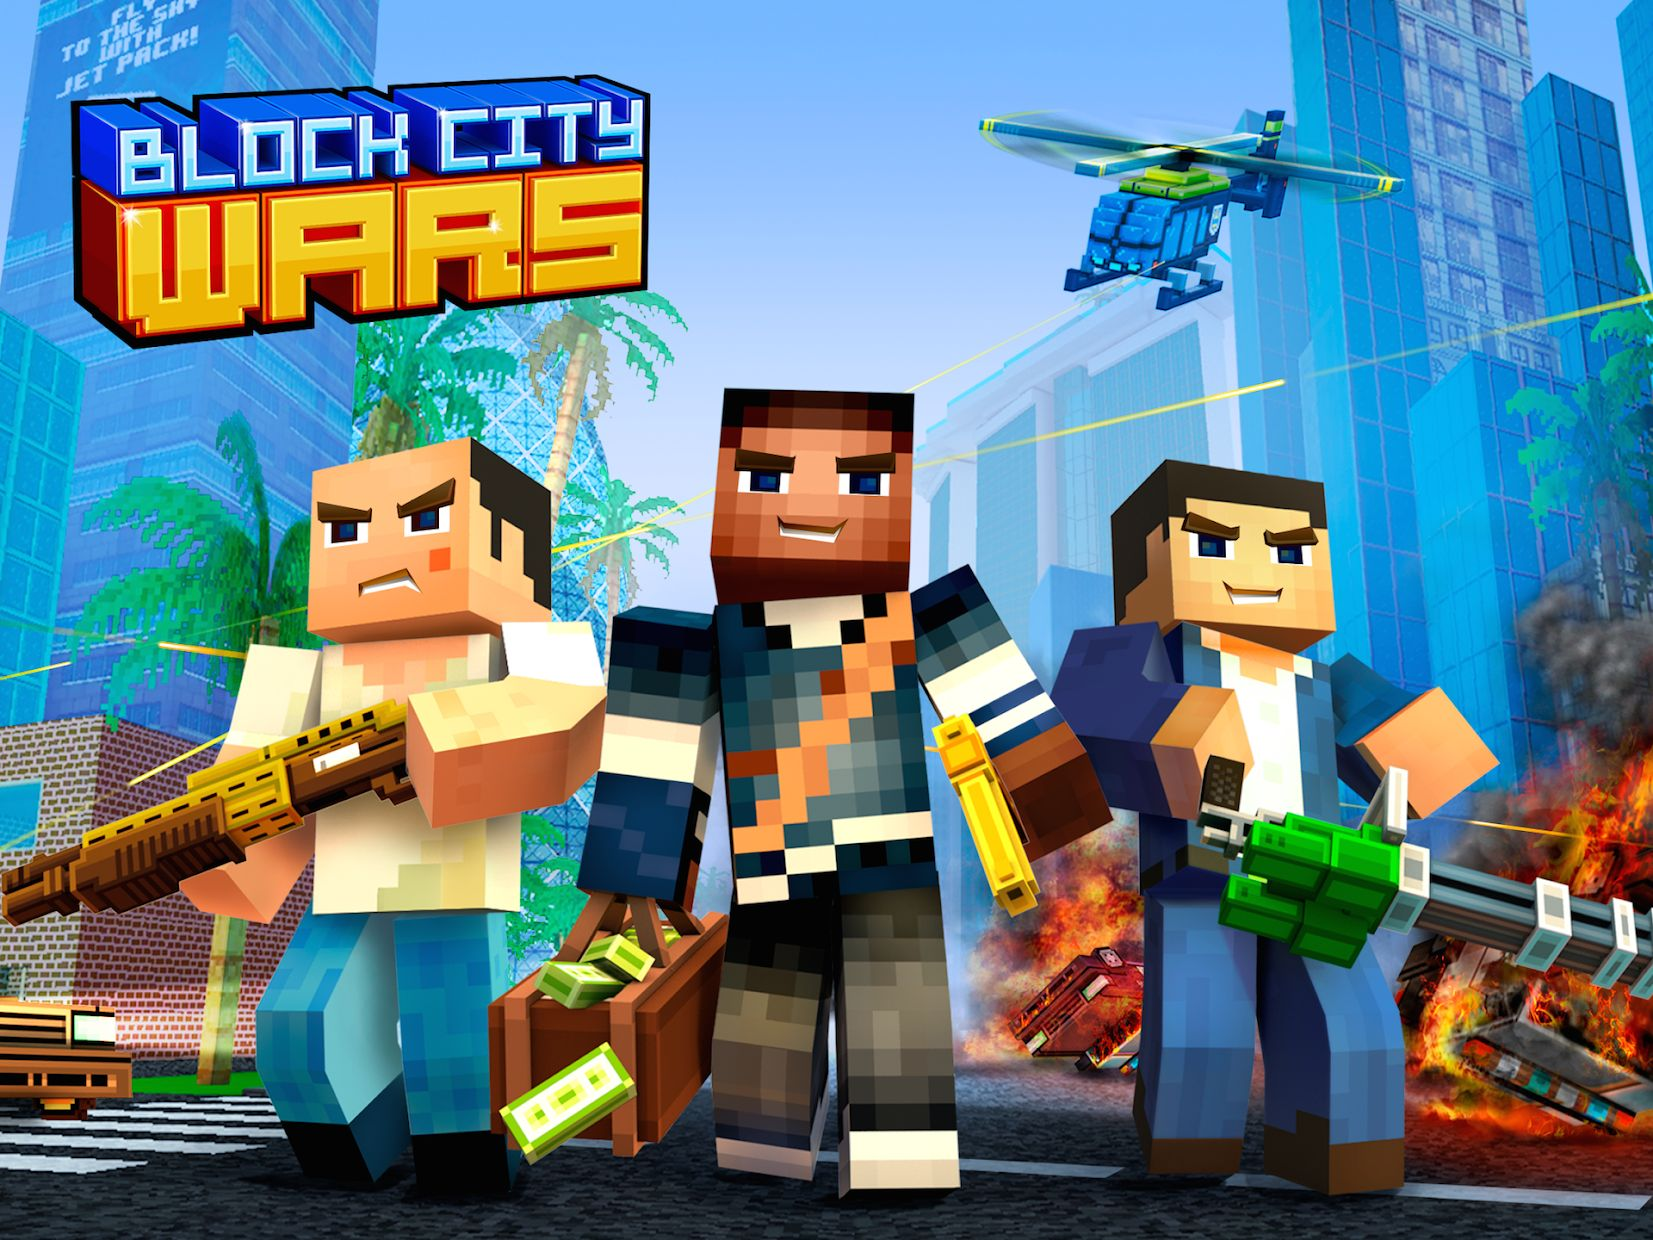 Block City Wars: Pixel Shooter with Battle Royale 游戏截图5